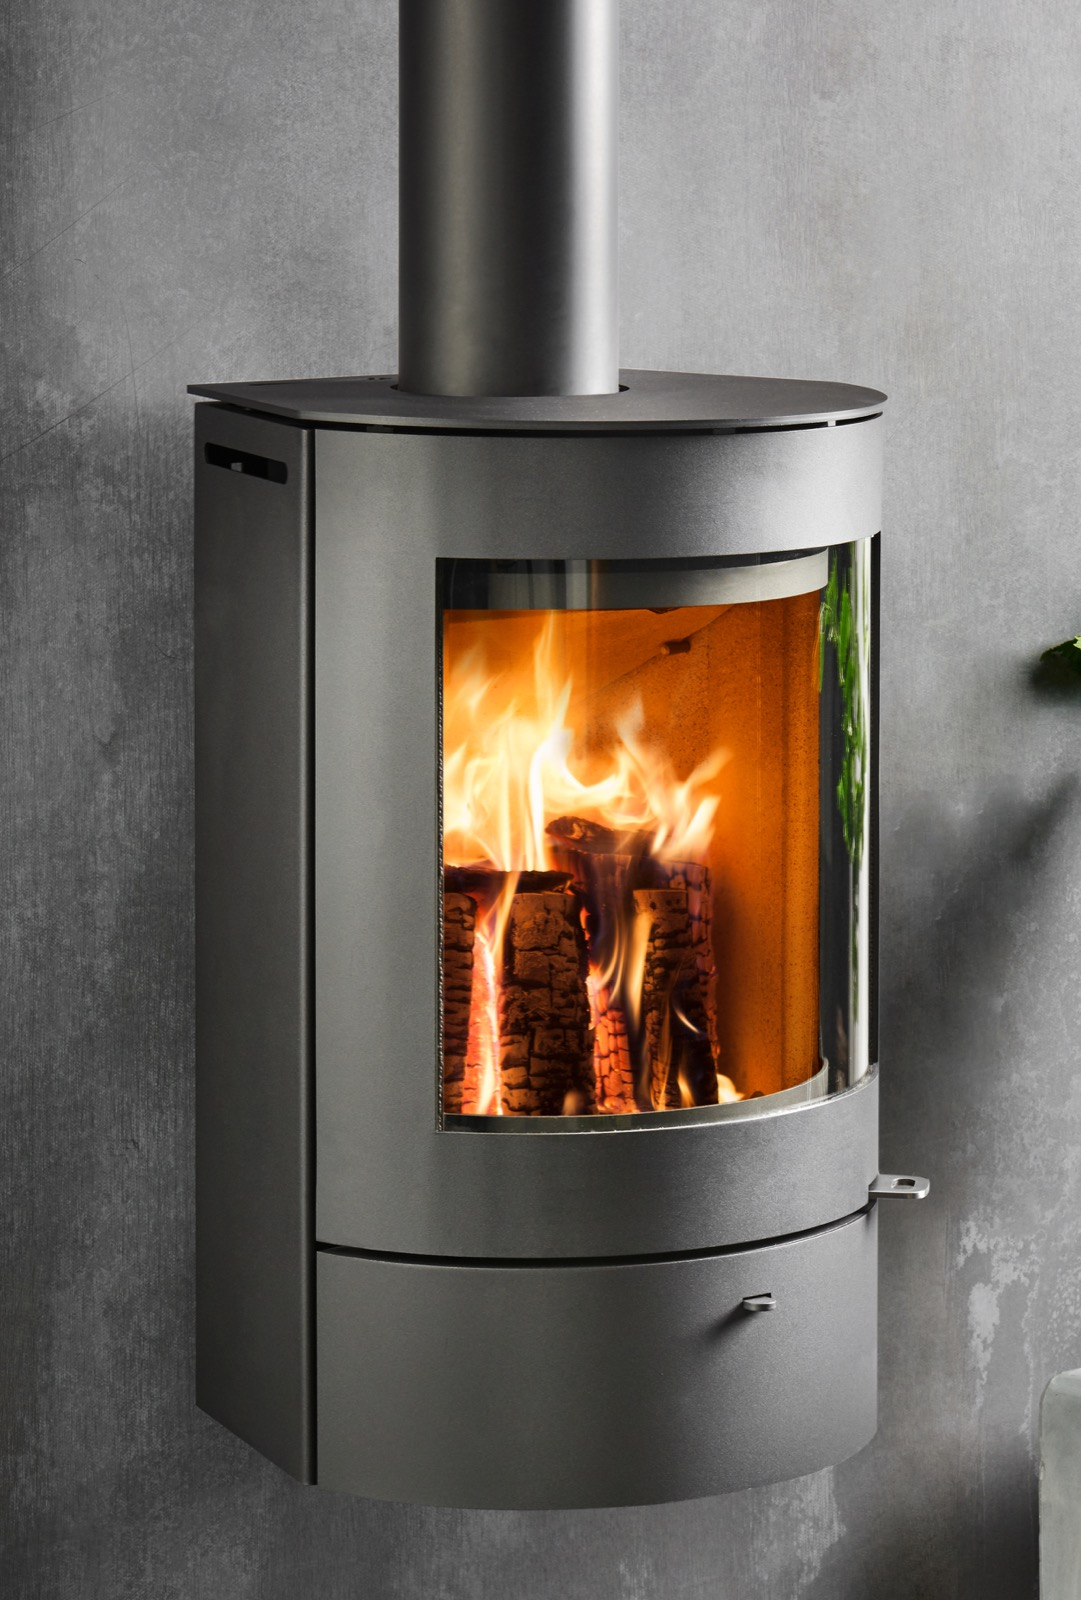 Pleasing Westfire Uniq 21 Wall Hung Wood Burning Stove In Black Best Image Libraries Counlowcountryjoecom